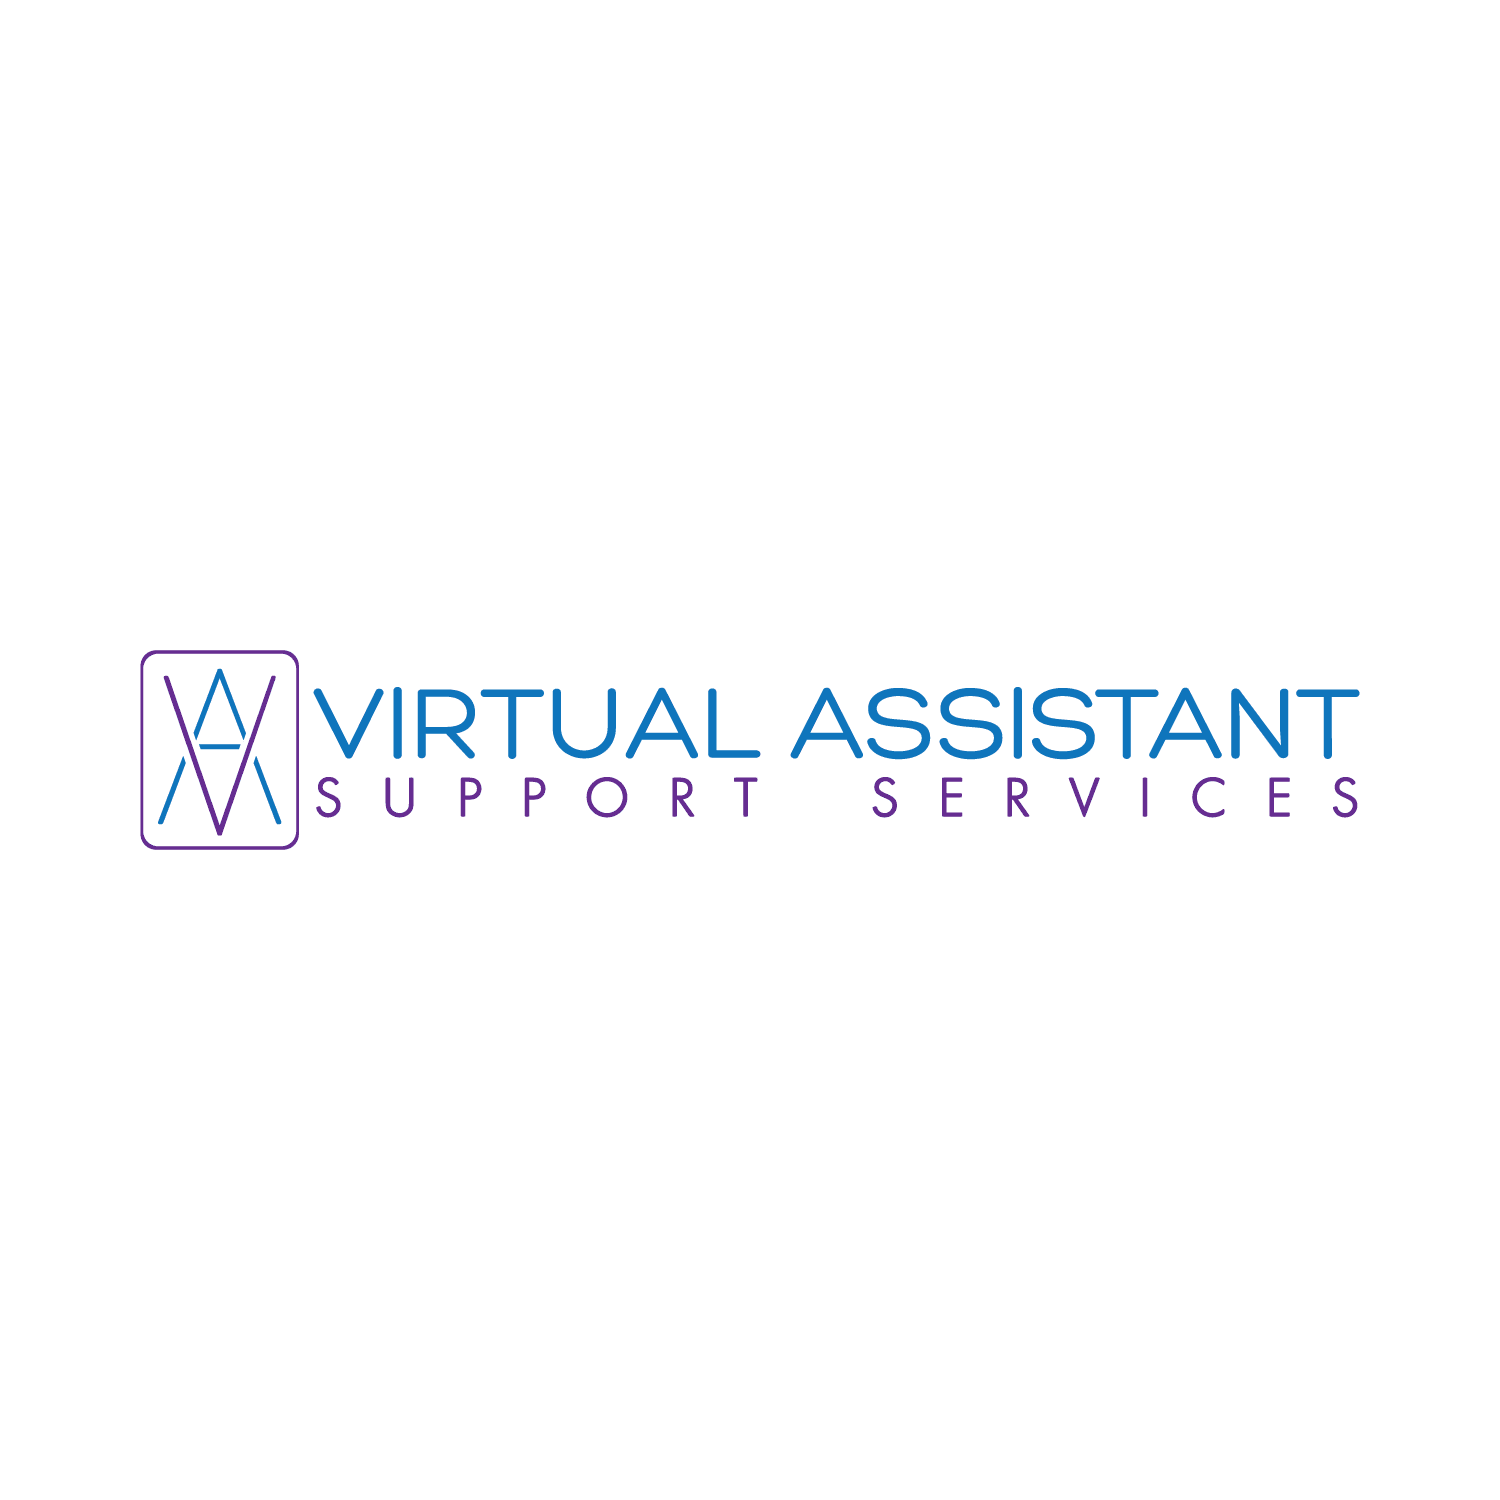 Virtual Assistant Support Services - Leicester, Leicestershire LE19 2JY - 07794 677646 | ShowMeLocal.com